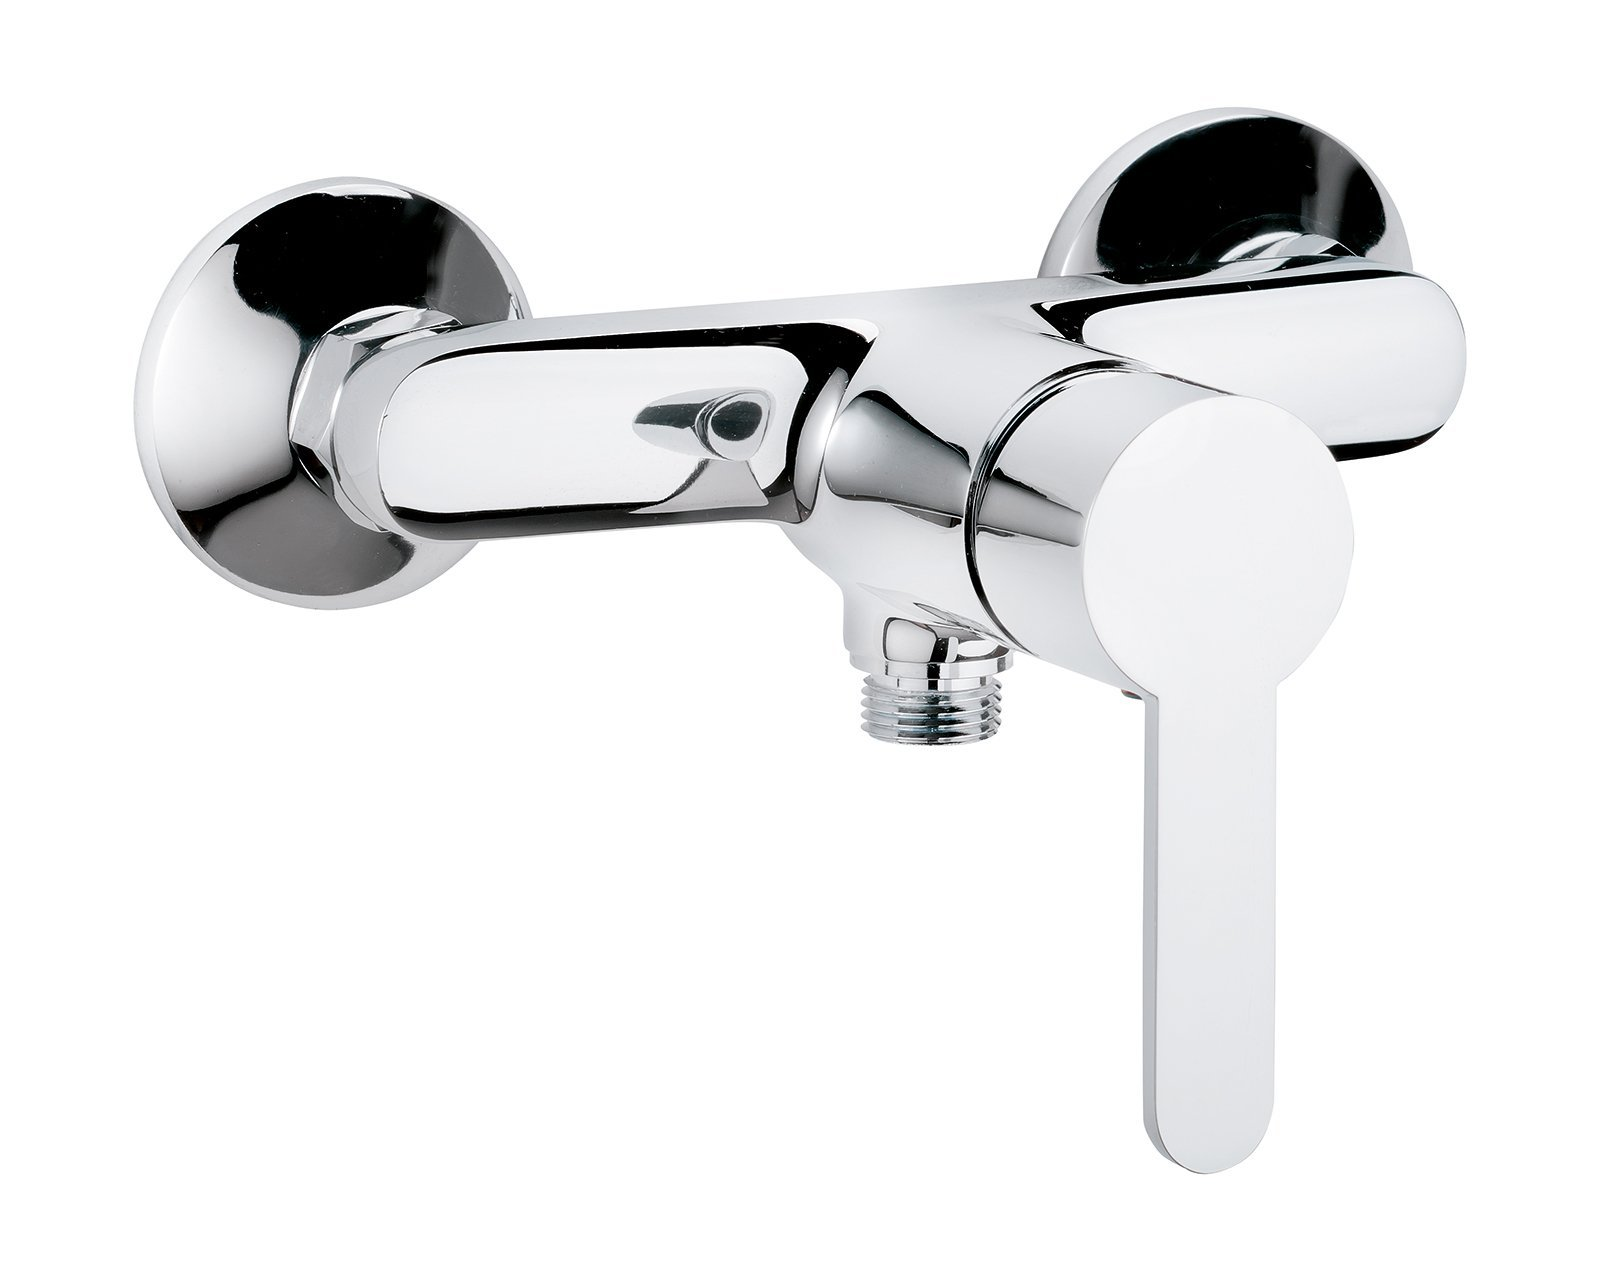 Jetmix Style Single-Handle Mixer Tap for Shower Chrome by AquaSu (Image #1)